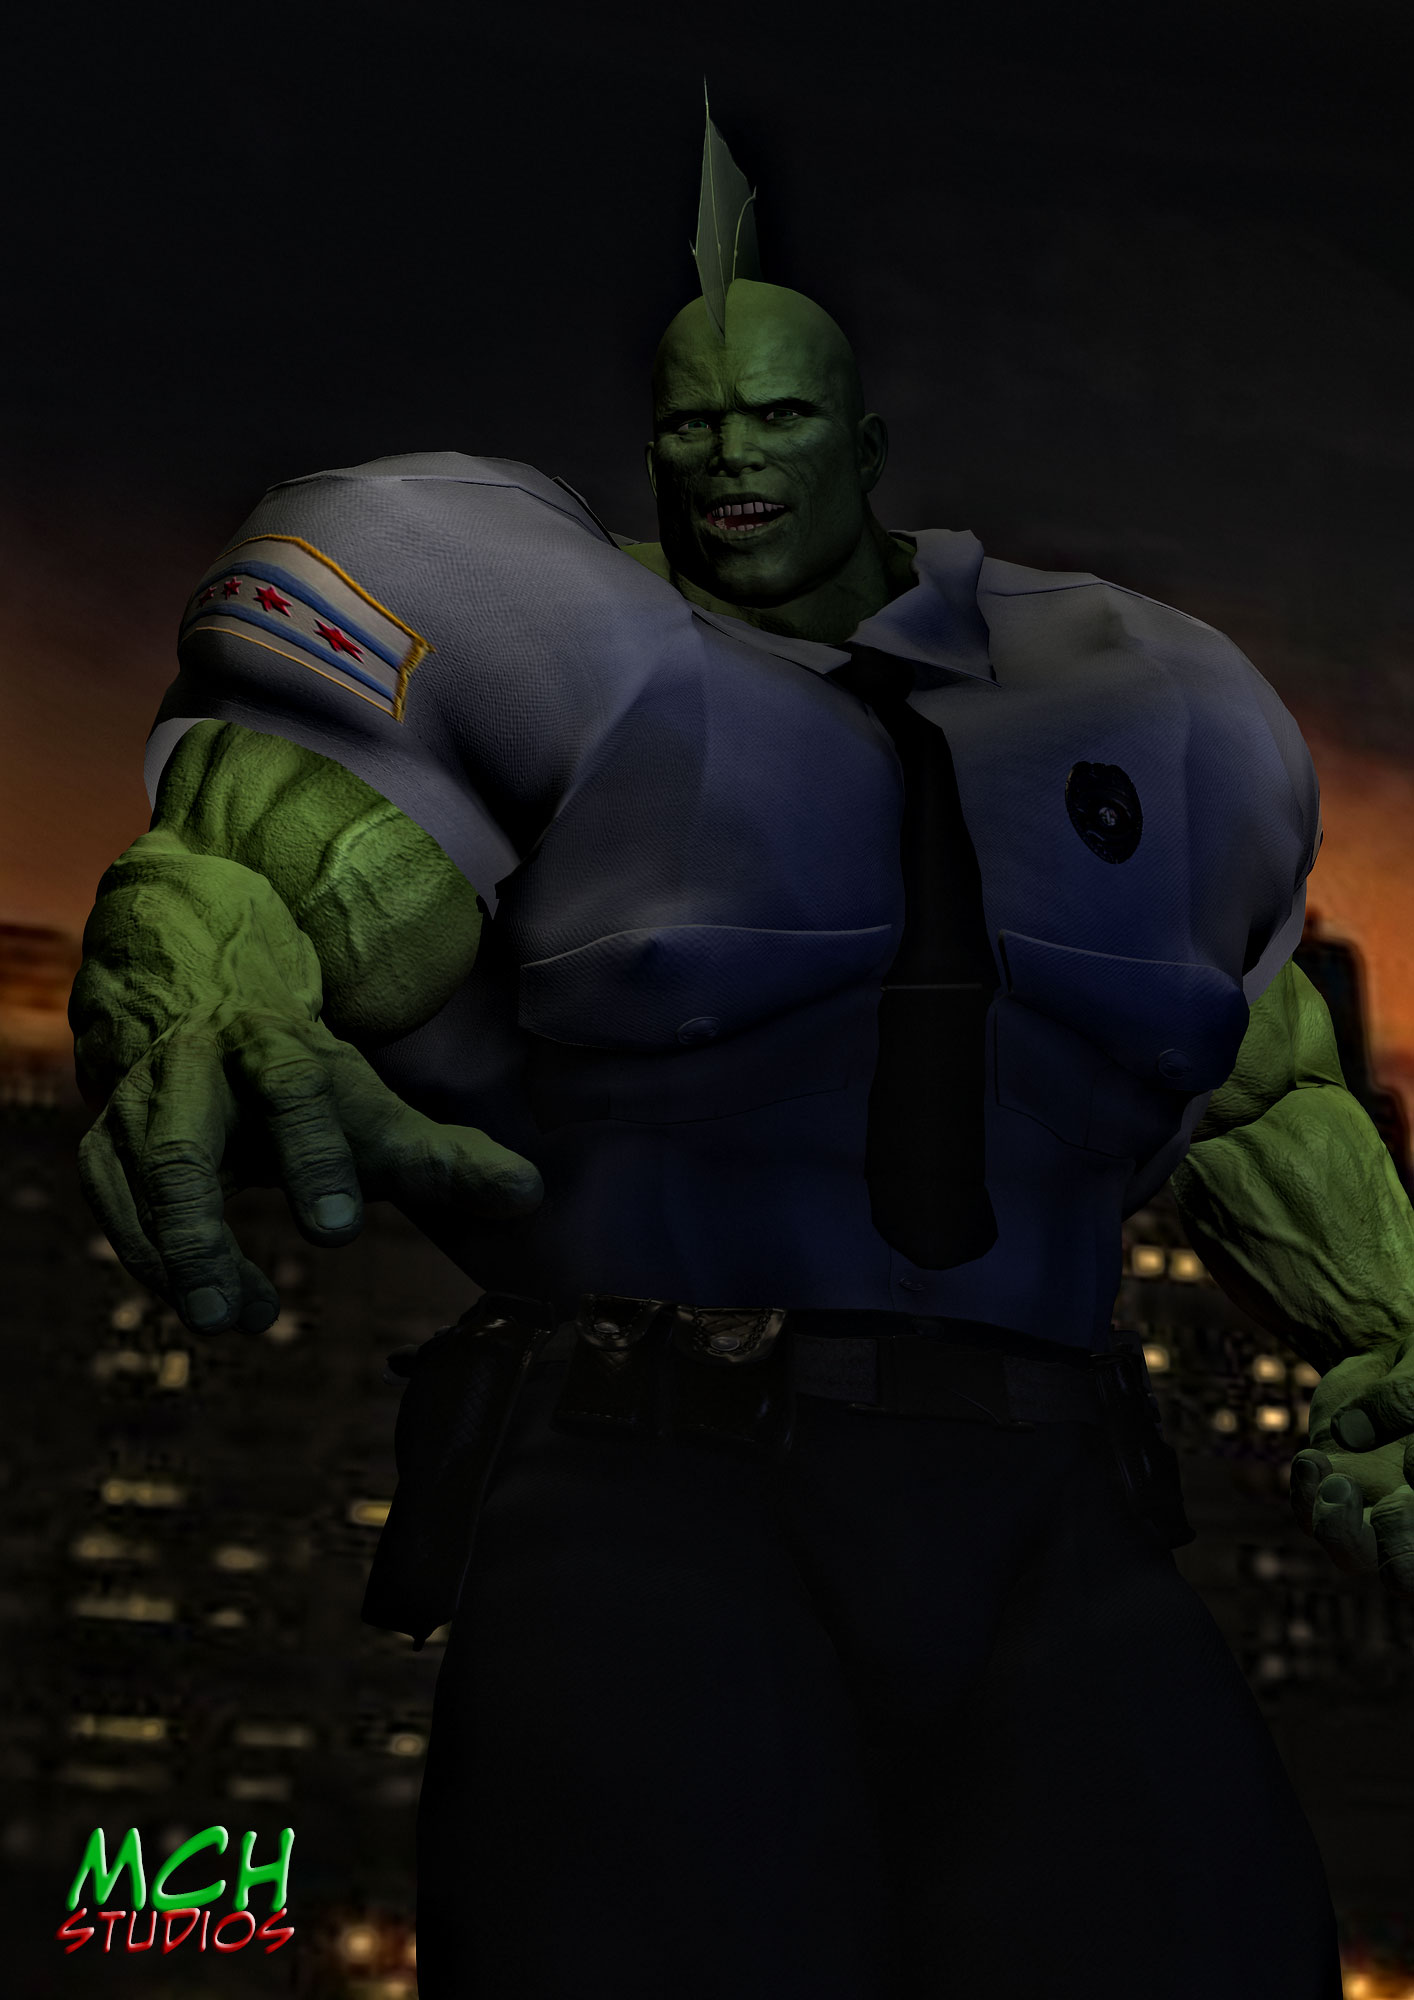 Remember when all the coolest heroes were green?